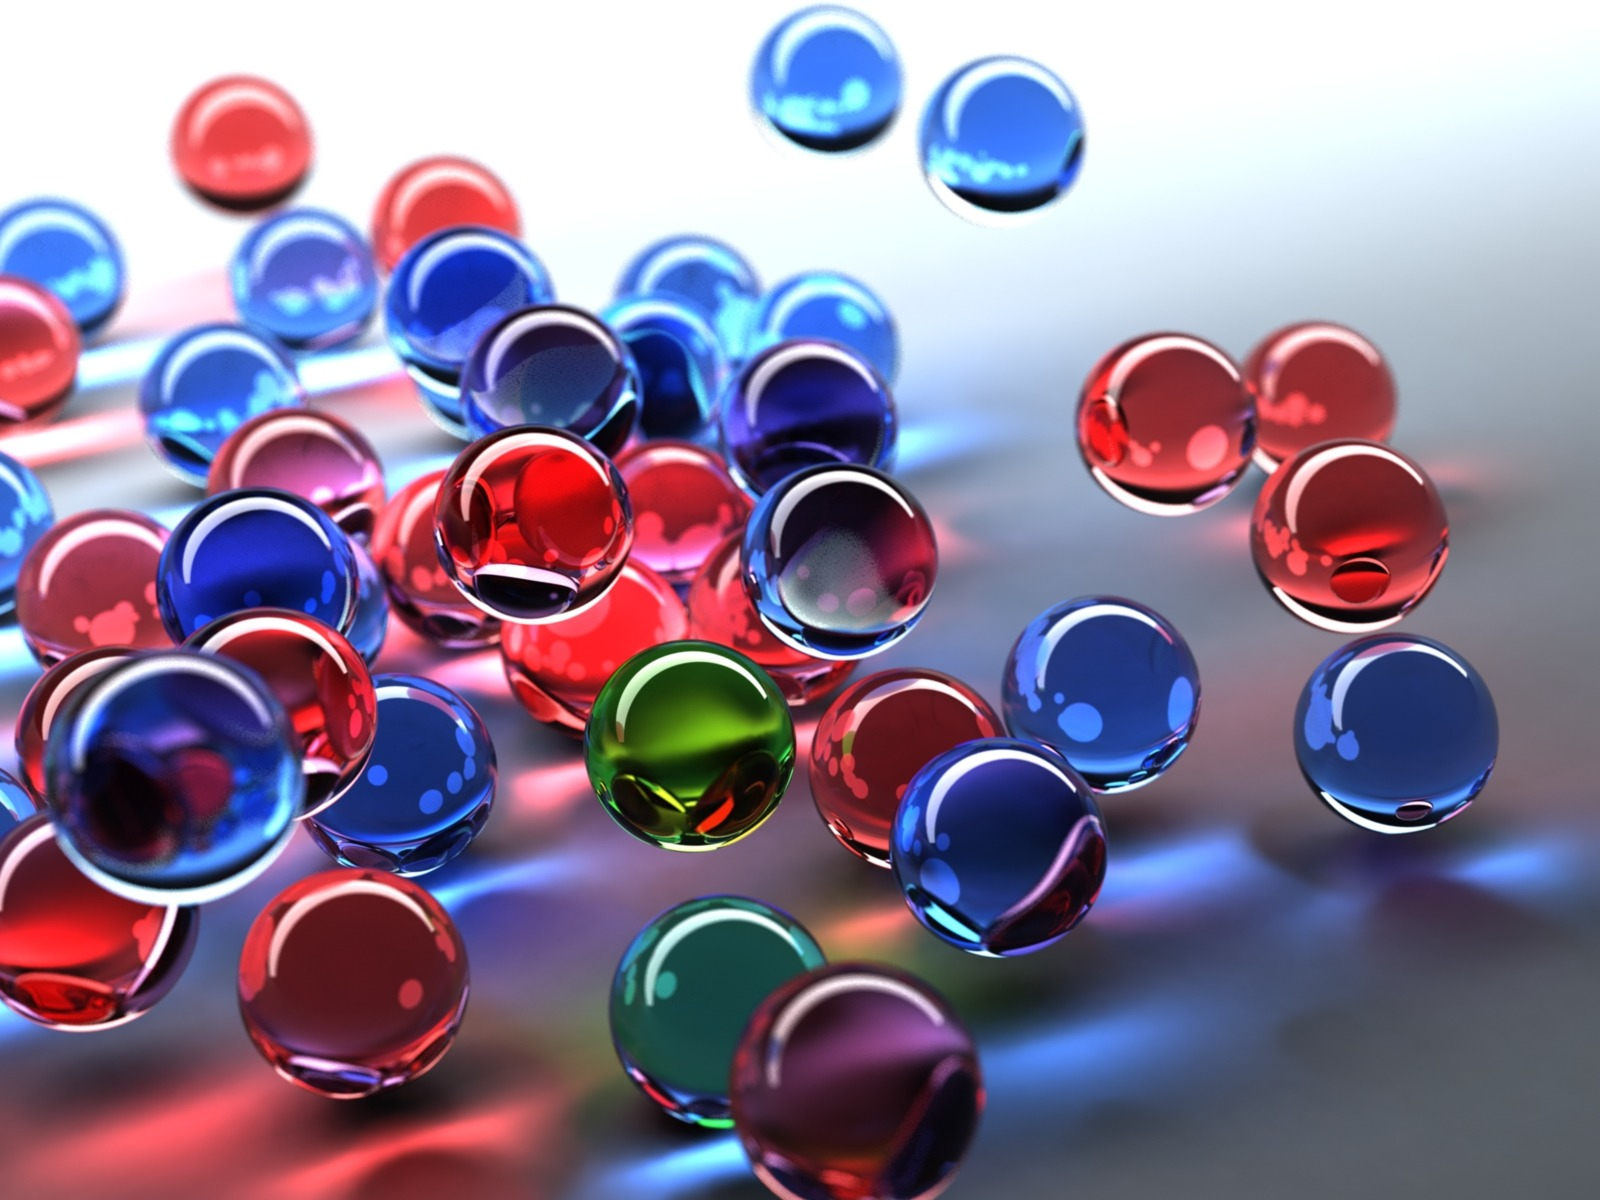 3D Crystal Bubbles - 3D Crystal Bubbles